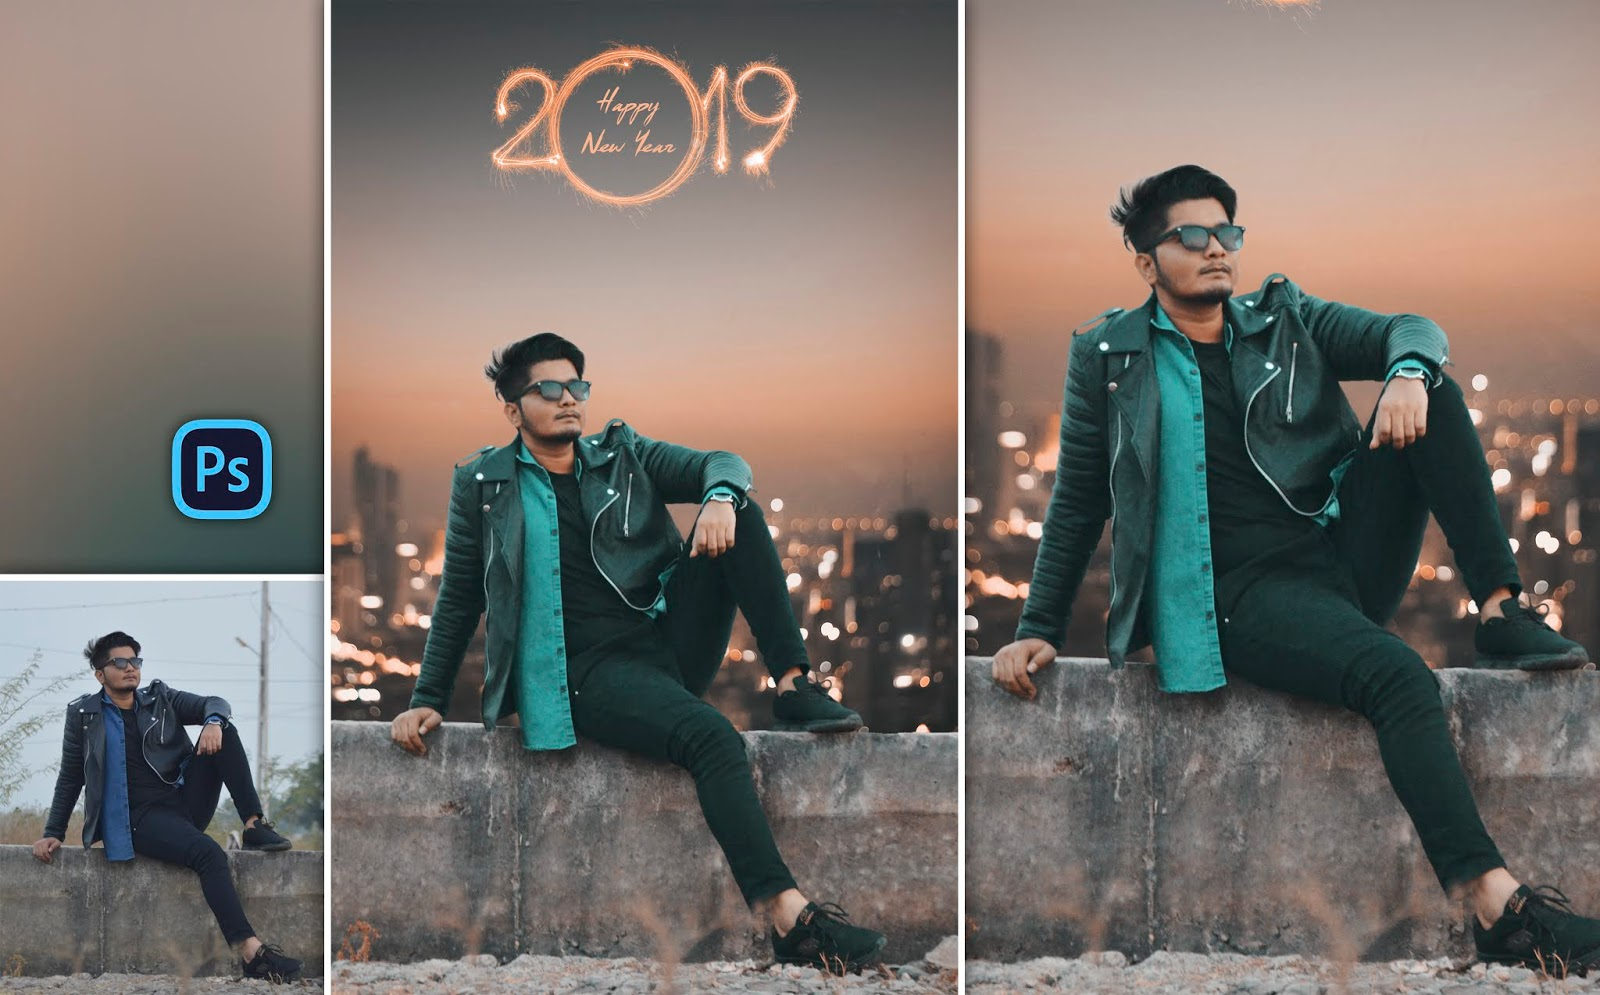 Realistic New Year 2019 New Concept | Photo Editing in Photoshop cc